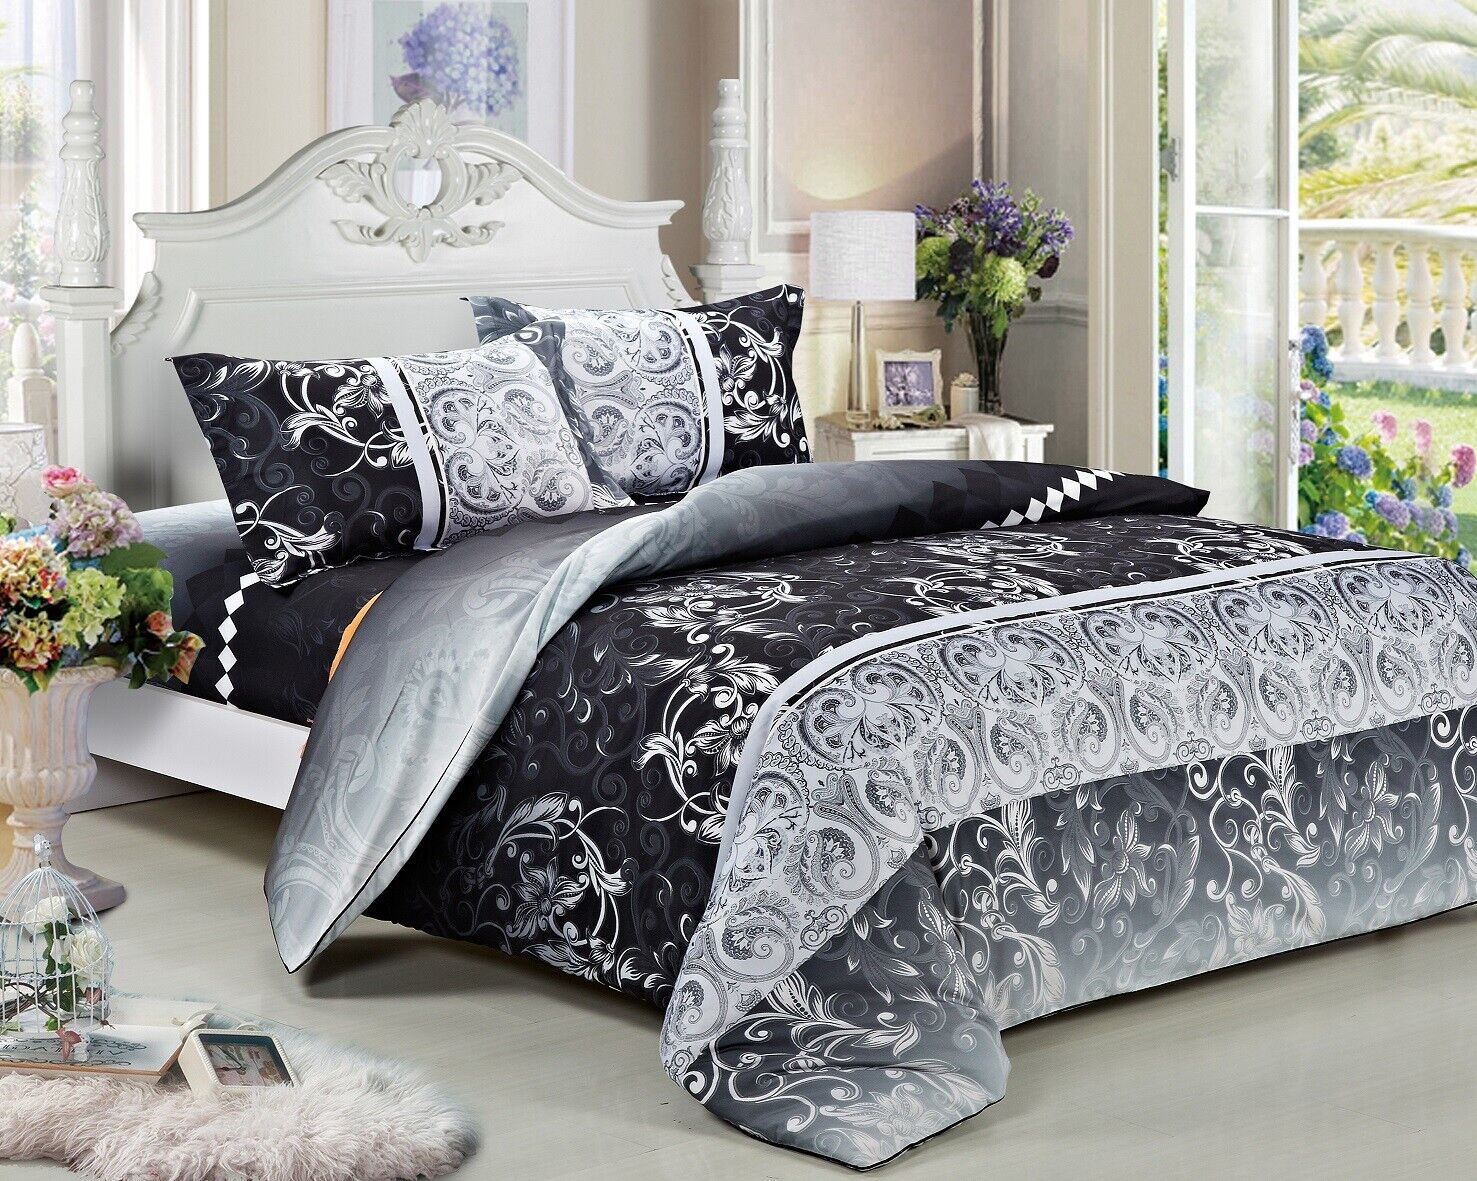 Black White Quilted Bedspread /& Pillow Shams Set Chinese Calligraphy Print